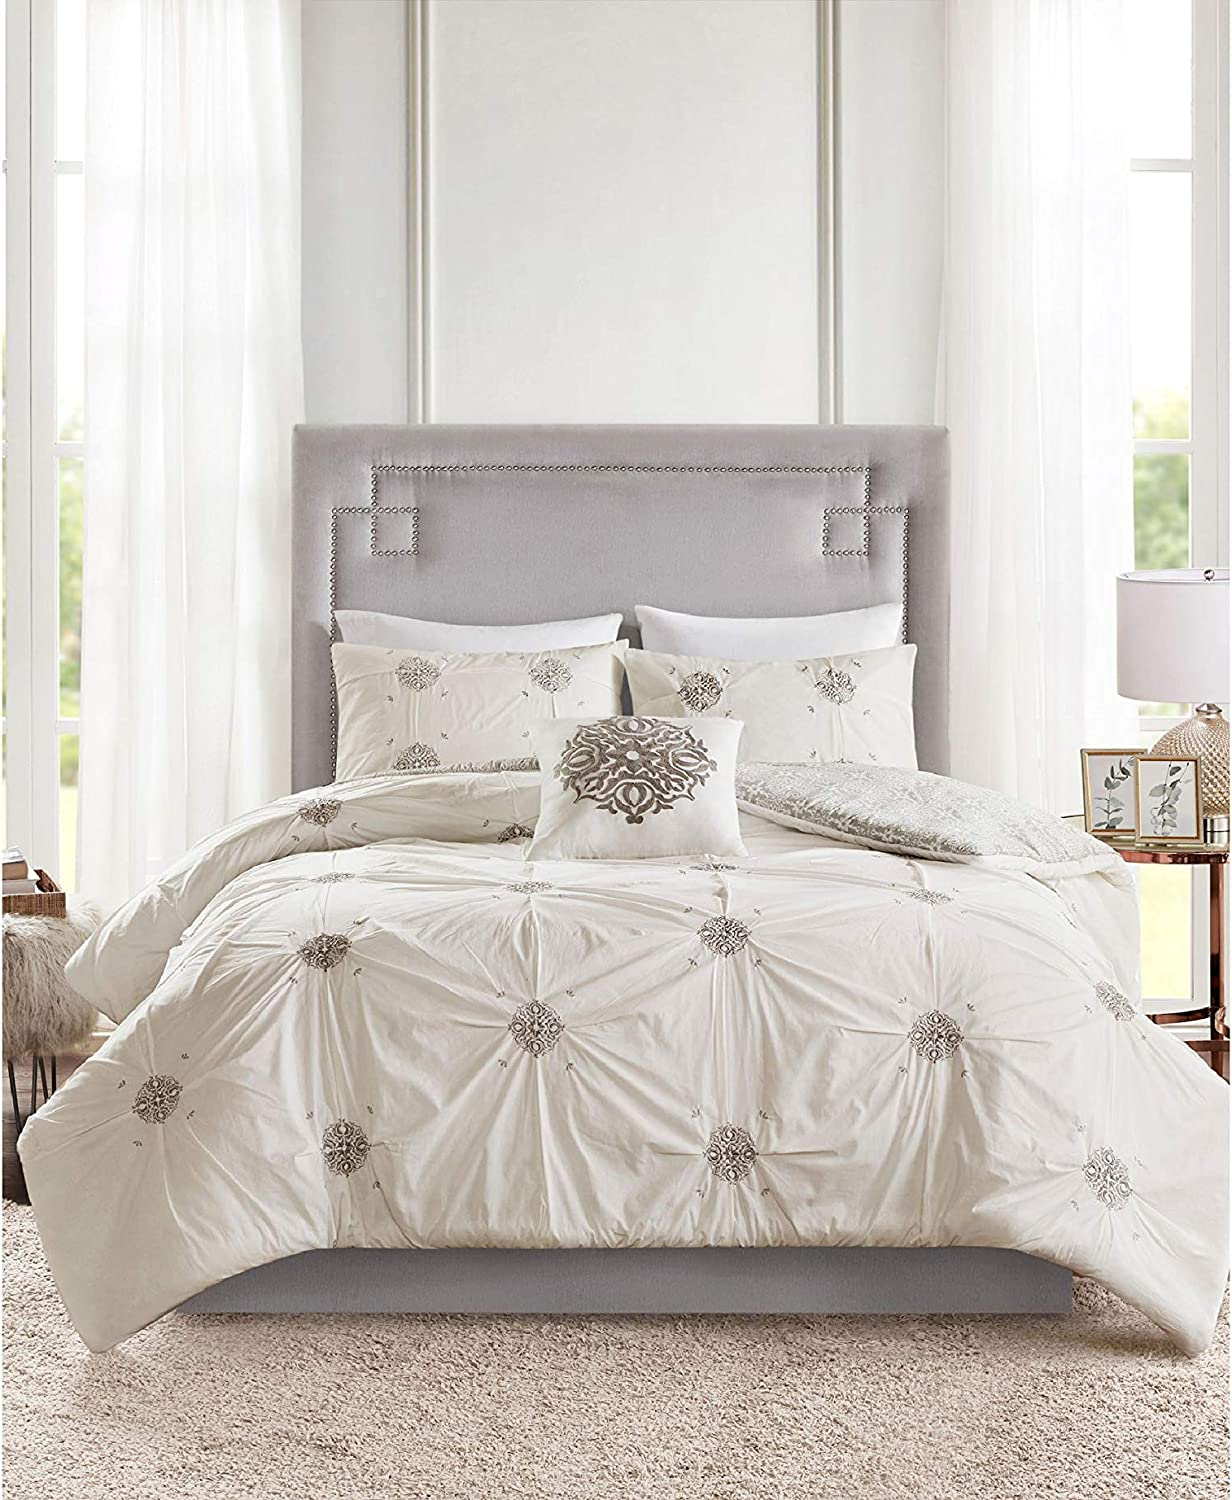 Malia 4 Piece Embroidered Selling Genuine Free Shipping Cotton Duvet Grey Cover Reversible Set